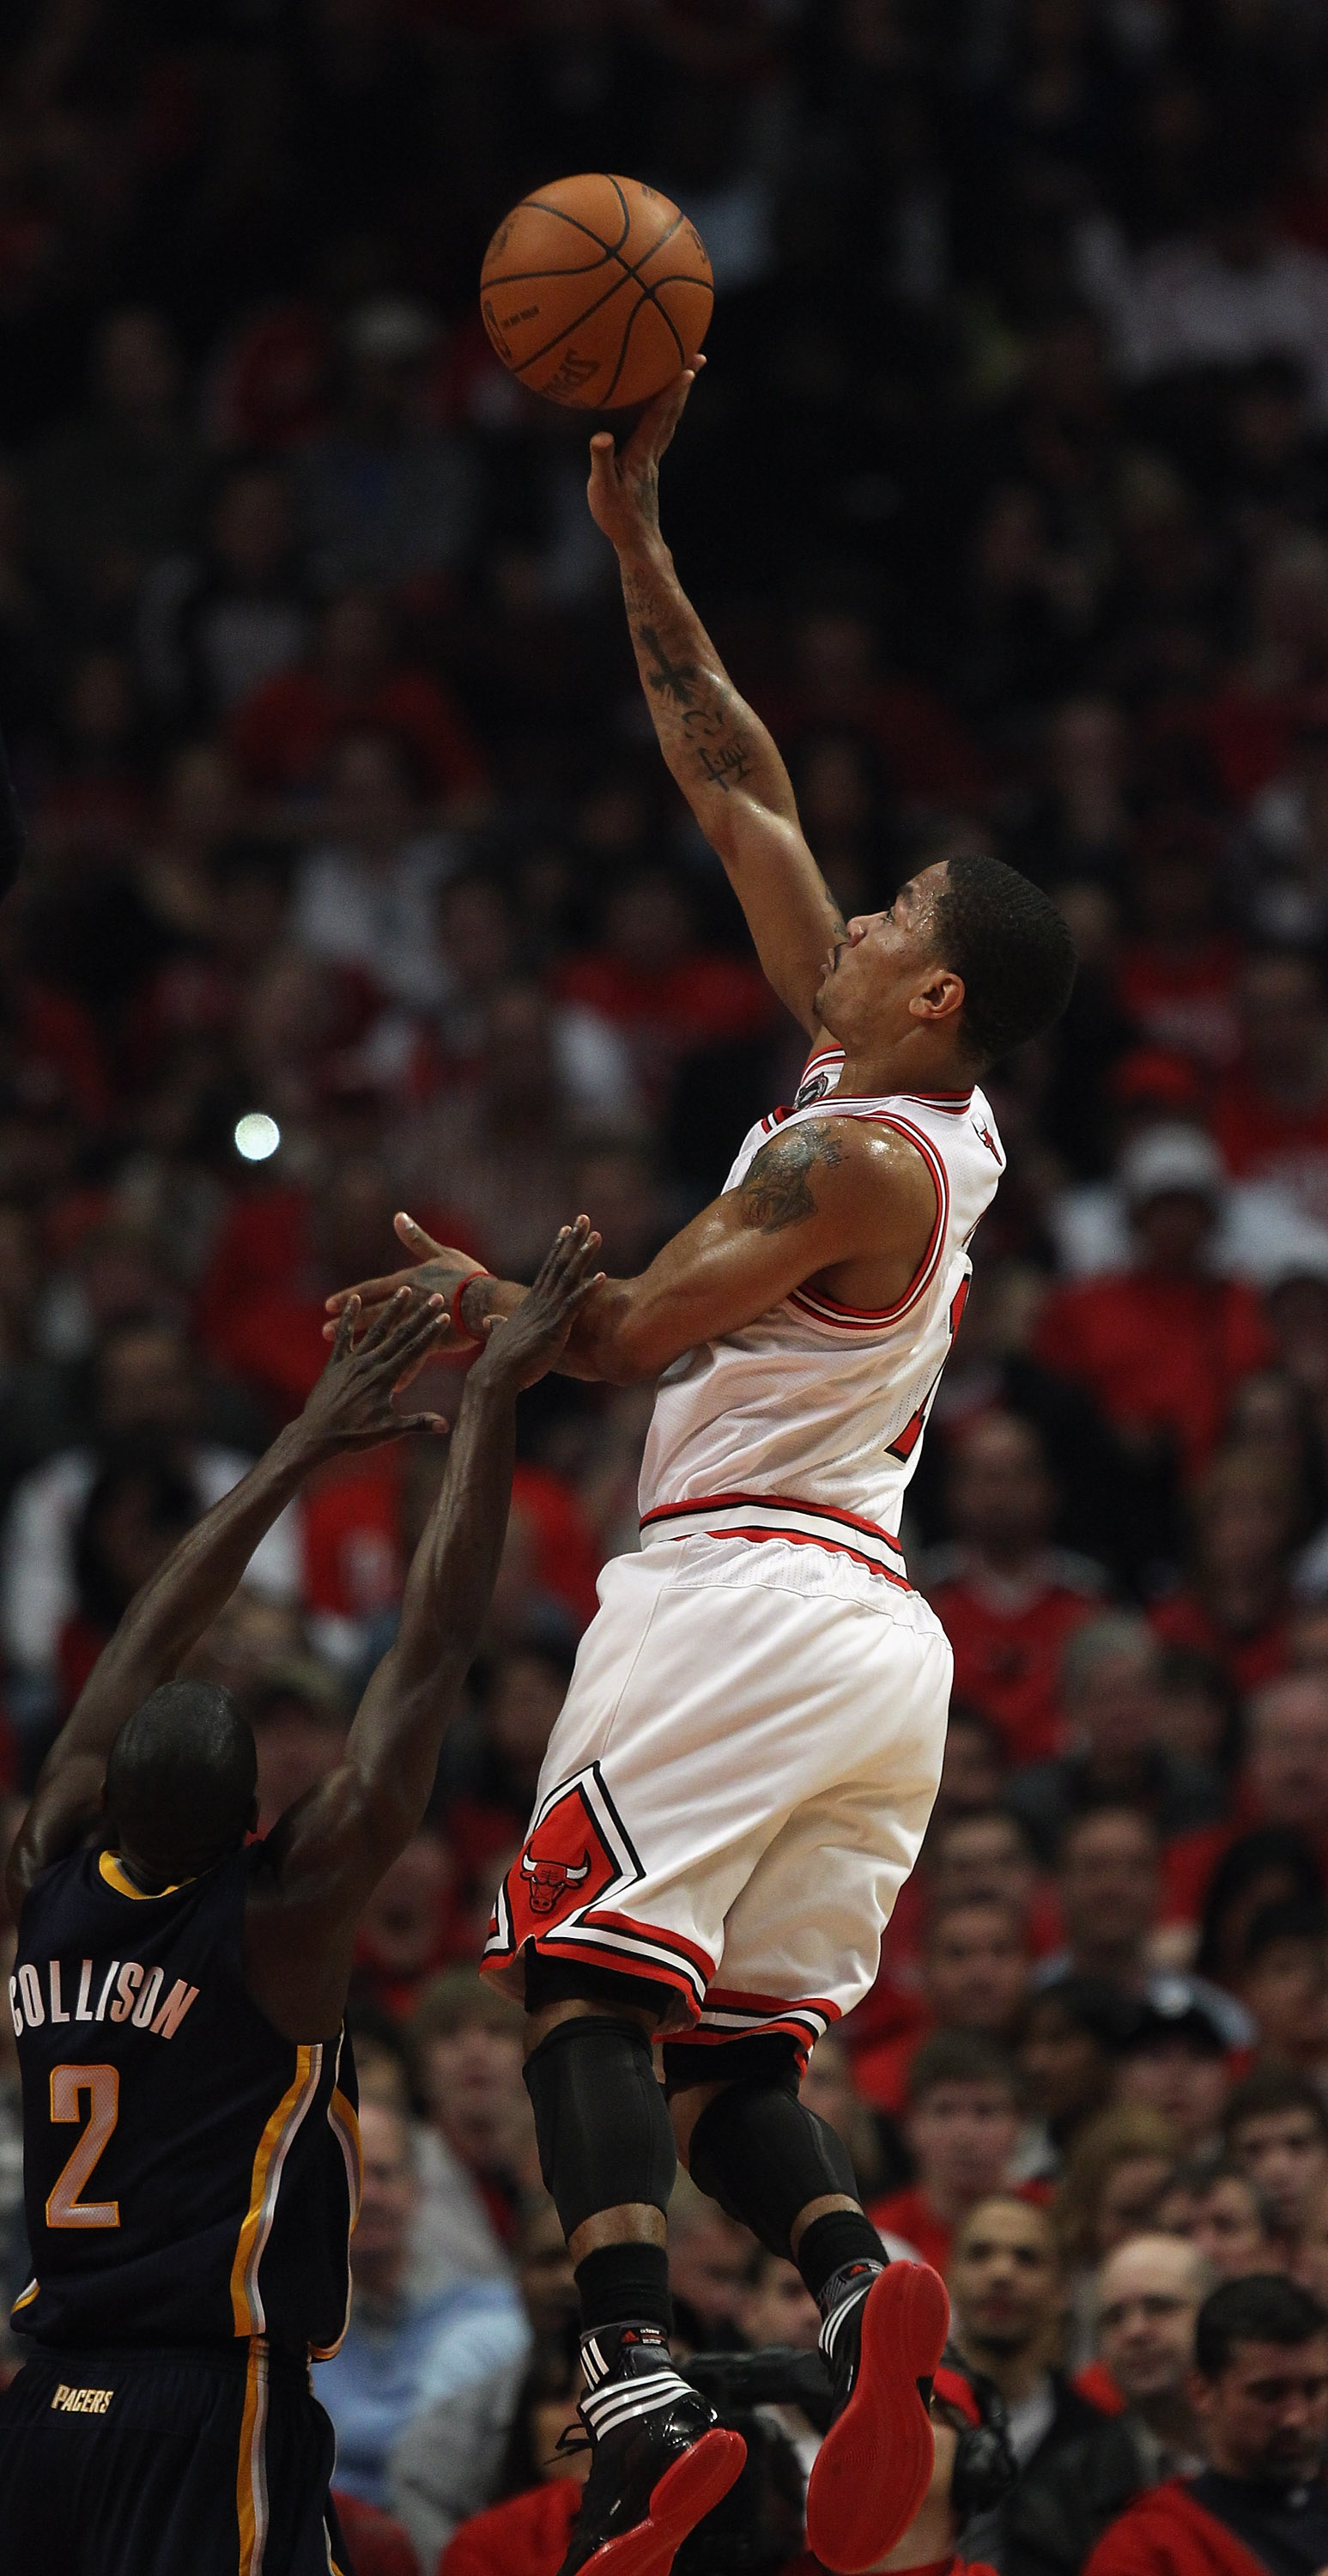 CHICAGO, IL - APRIL 16: Derrick Rose #1 of the Chicago Bulls puts up a shot over Darren Collison #2 of the Indiana Pacers in Game One of the Eastern Conference Quarterfinals in the 2011 NBA Playoffs at the United Center on April 16, 2011 in Chicago, Illin